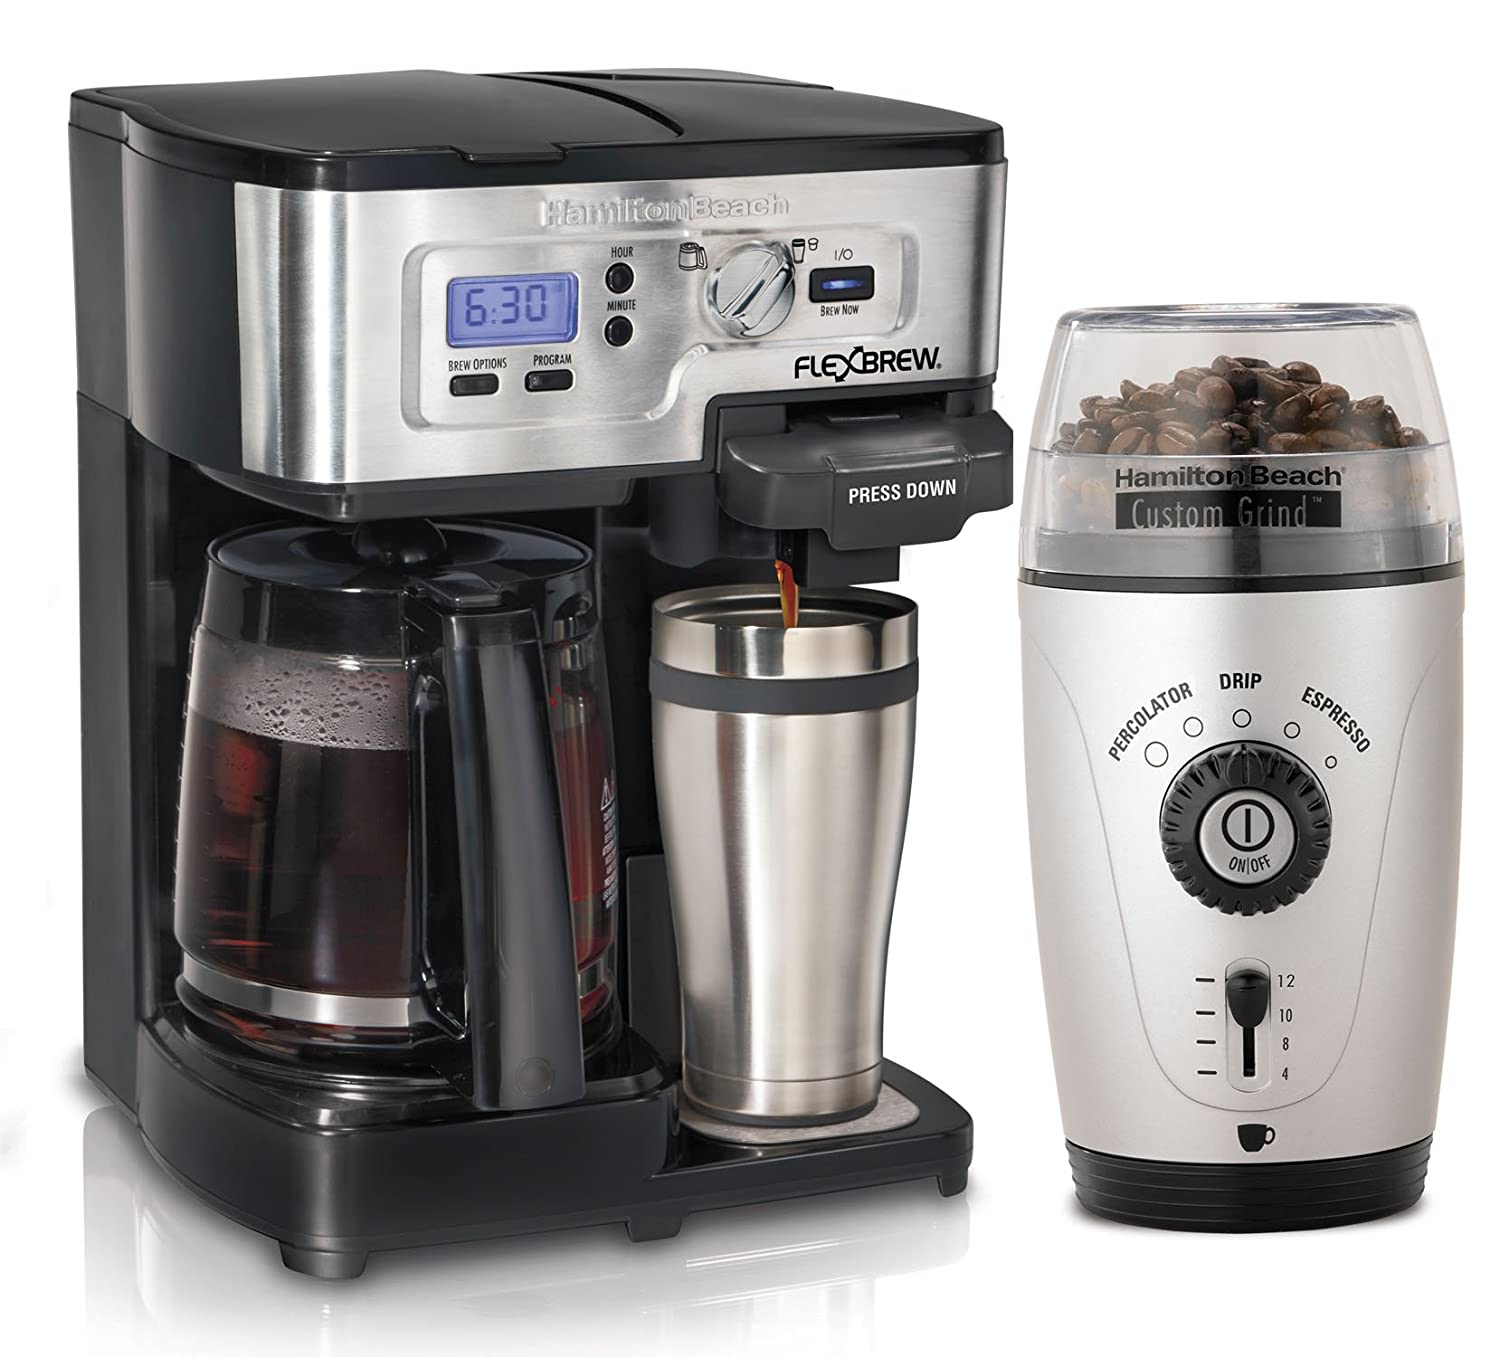 Best Coffee Maker with Grinder Automatic and Programmable - Amazing Machines